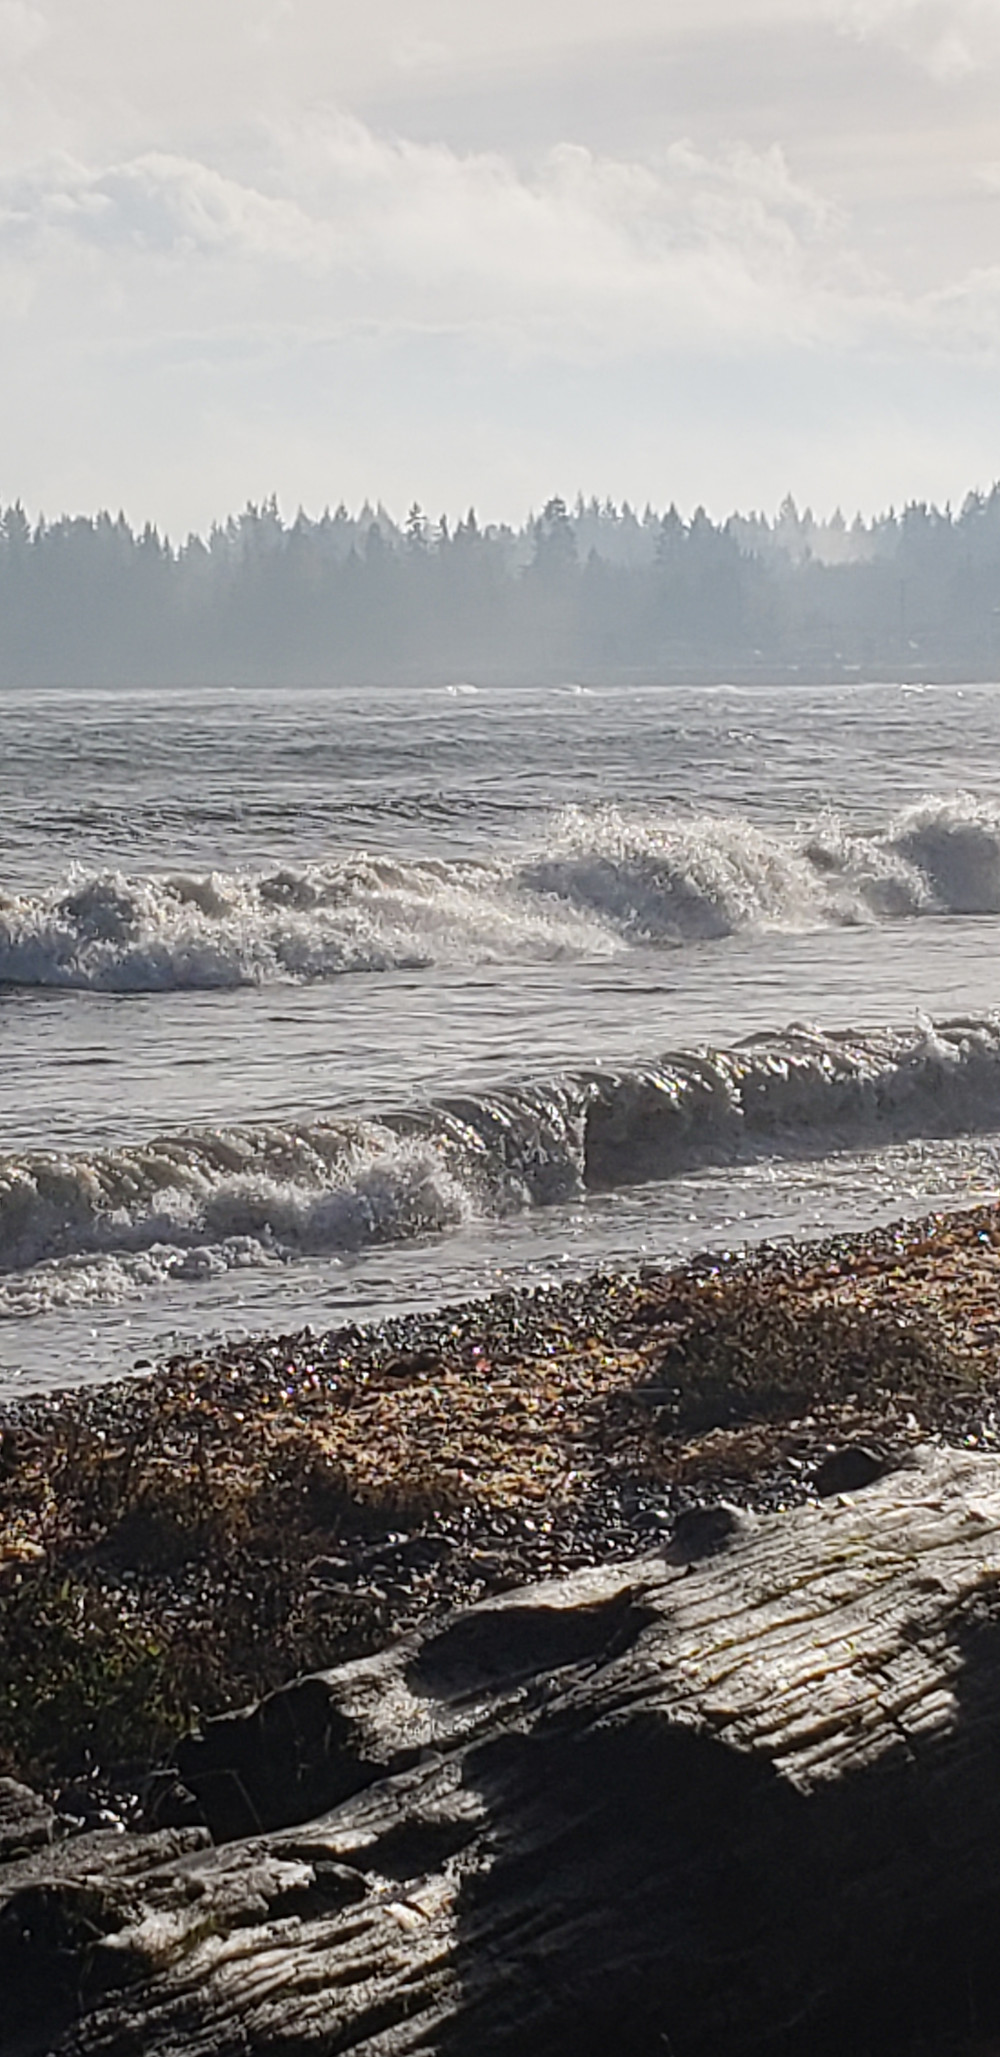 a photo of a beach with waves and sand and its a very nice windy day